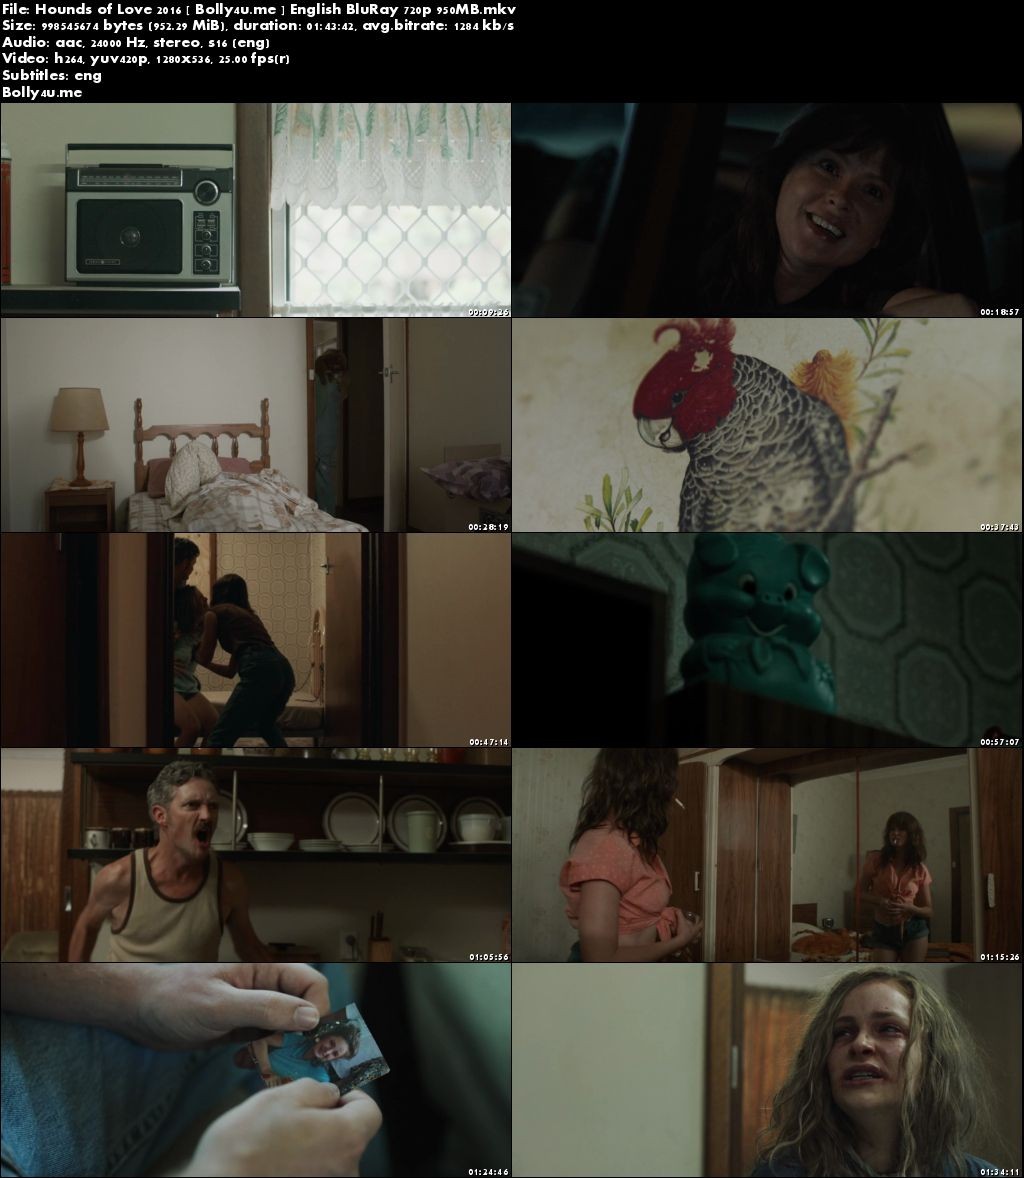 Hounds of Love 2016 BluRay 300MB Full English Movie Download 480p